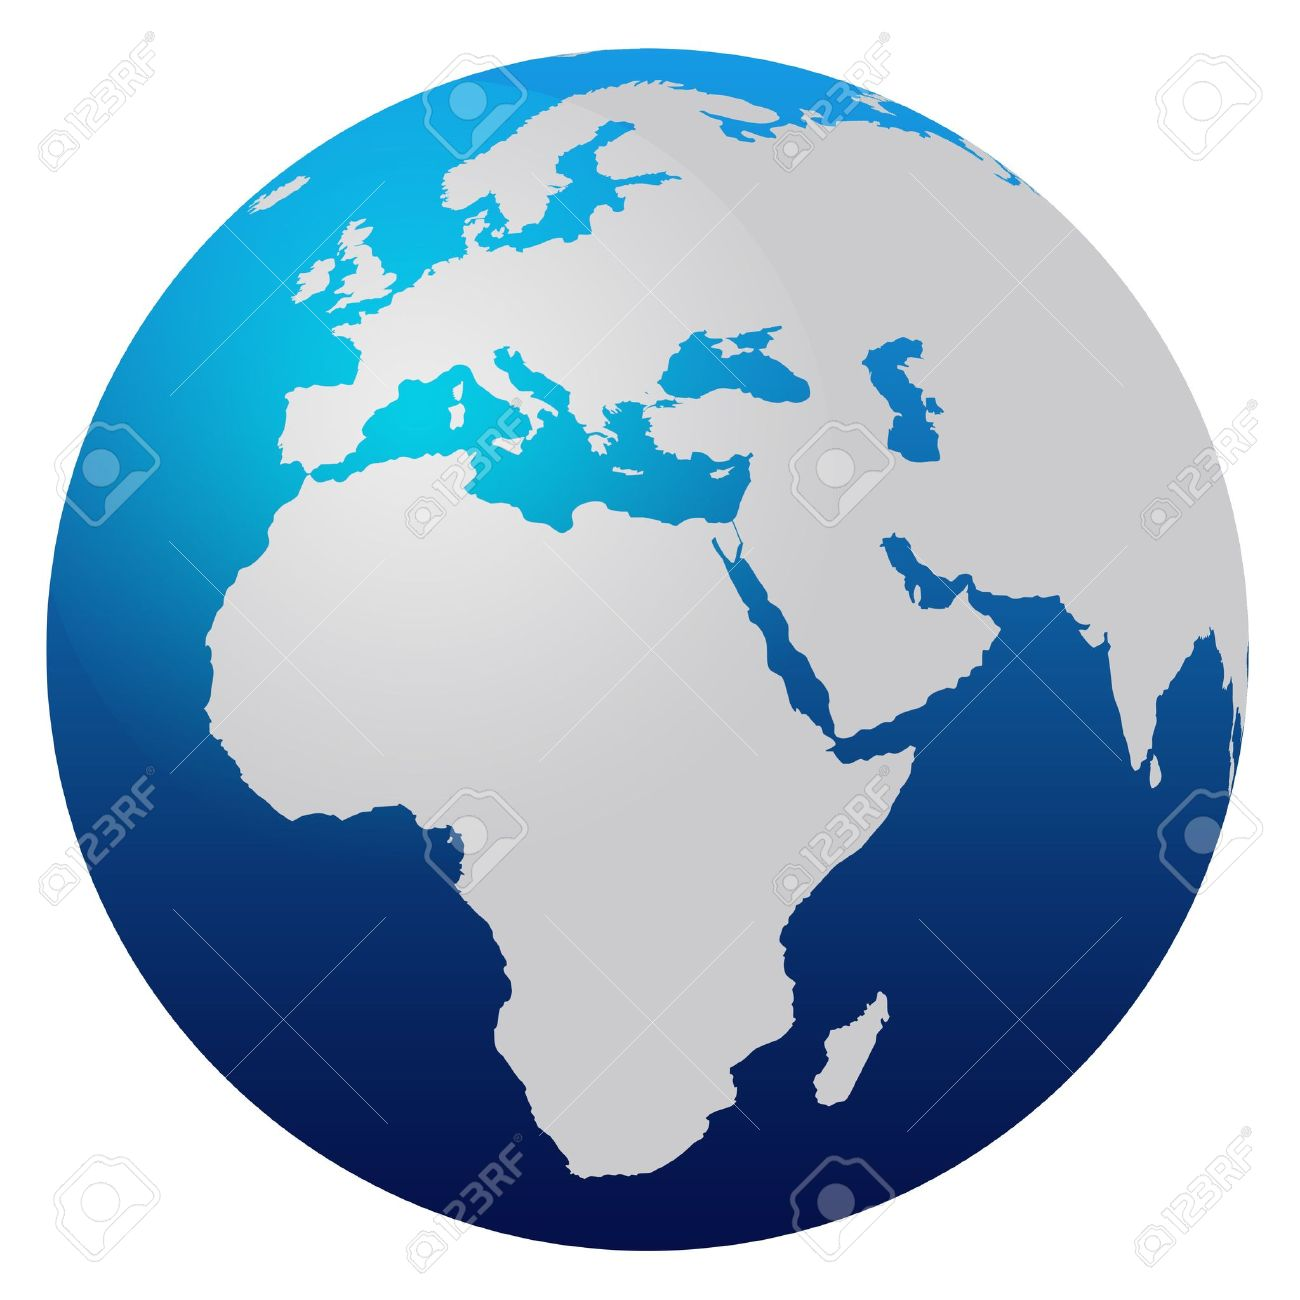 World map blue globe europe and africa stock photo picture and world map blue globe europe and africa stock photo 2554396 gumiabroncs